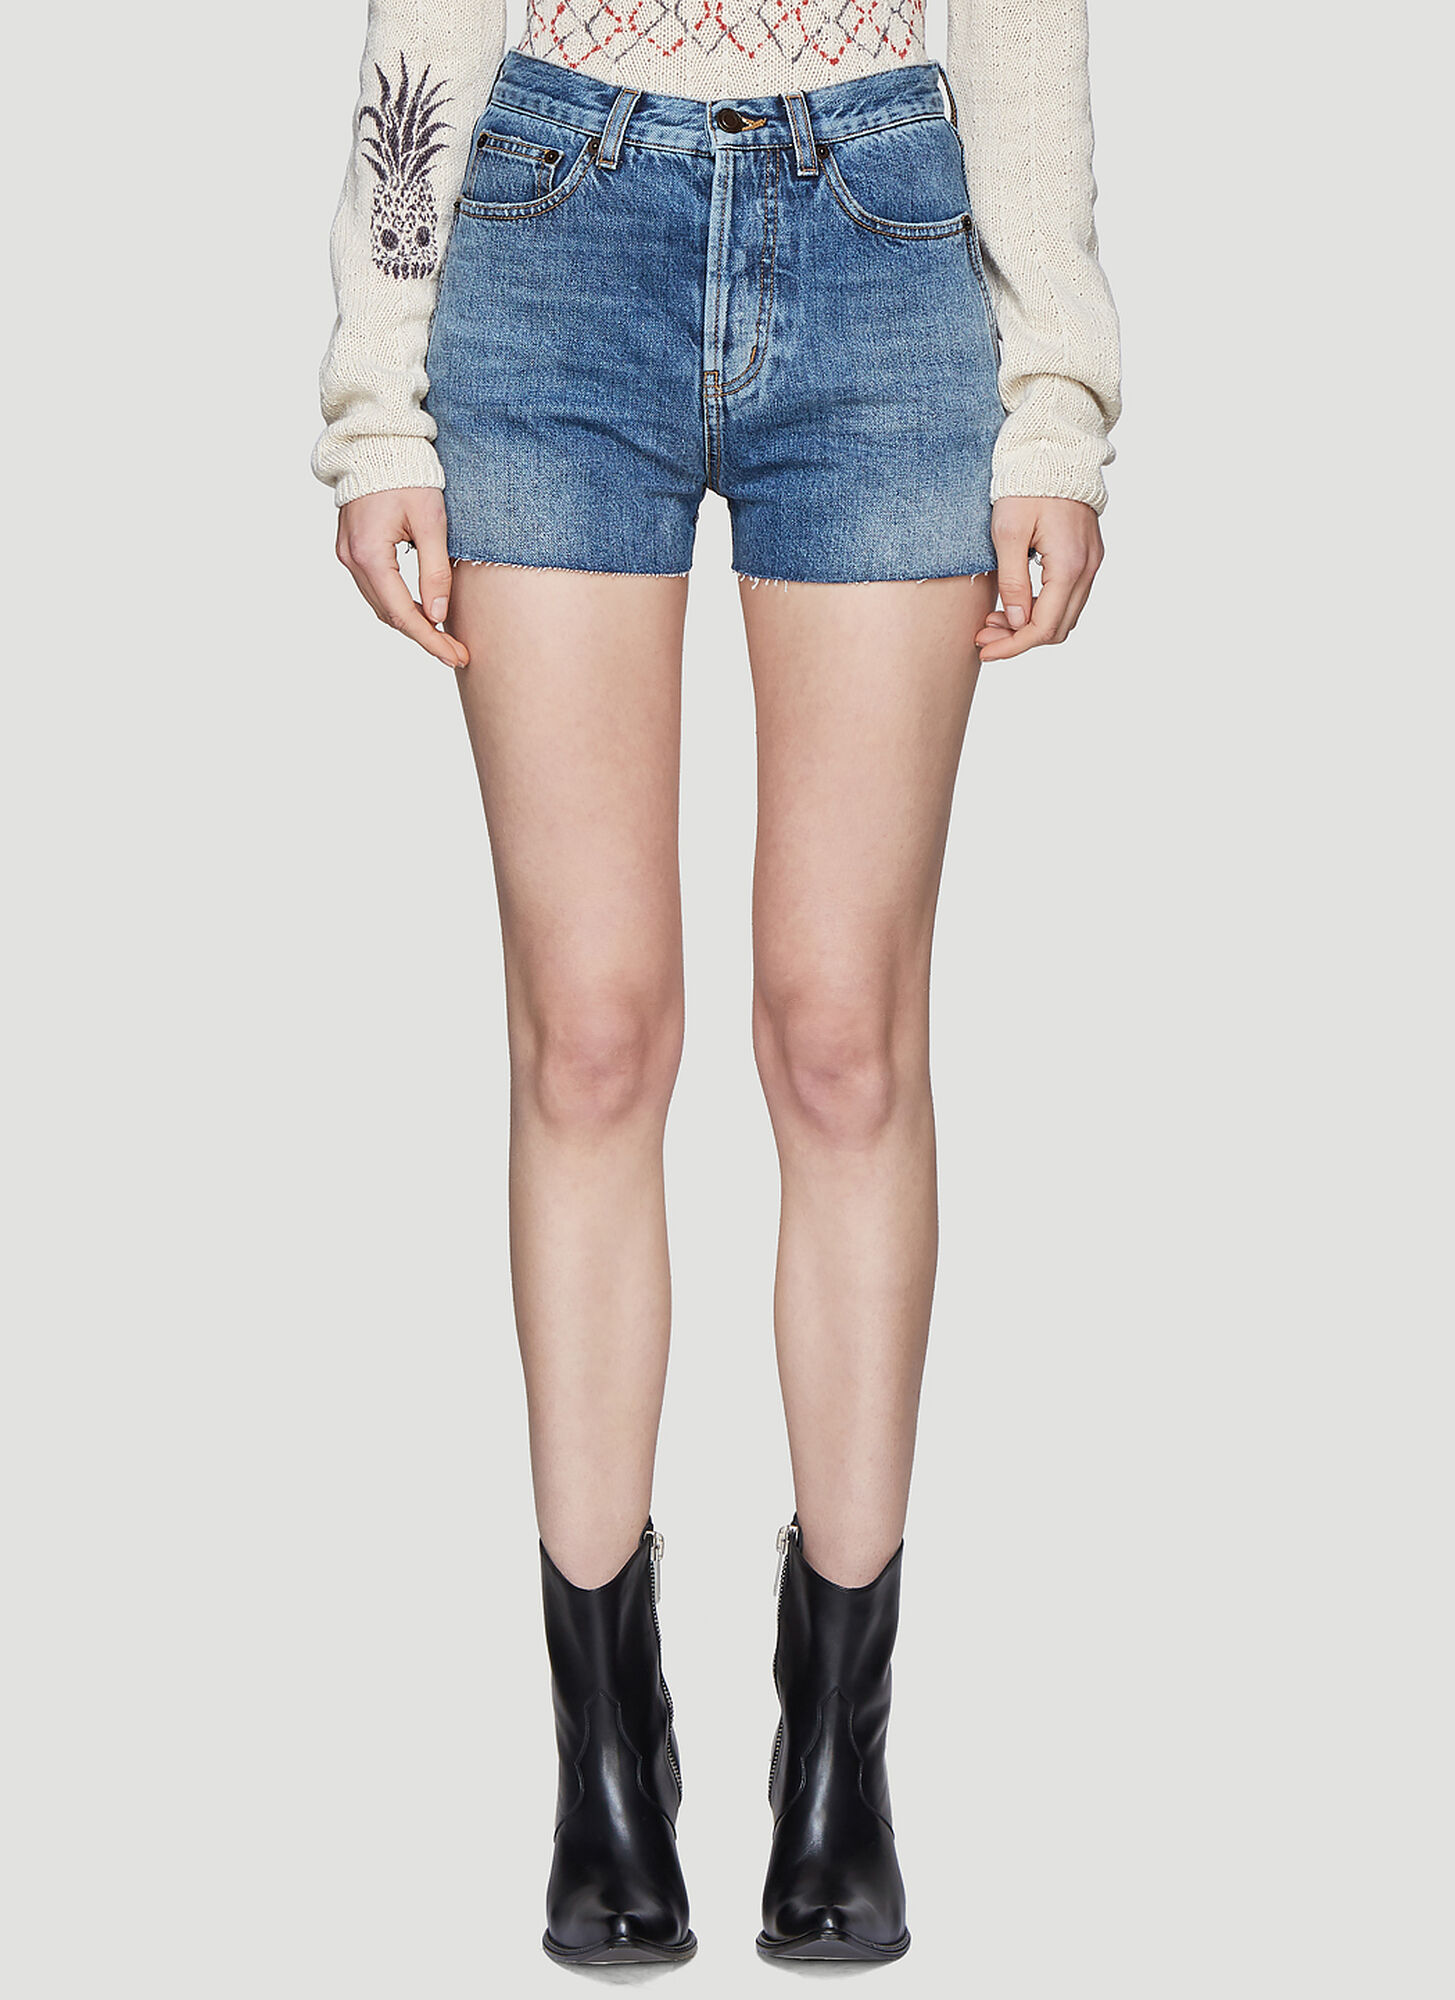 Saint Laurent Bandana Pocket Denim Shorts in Blue